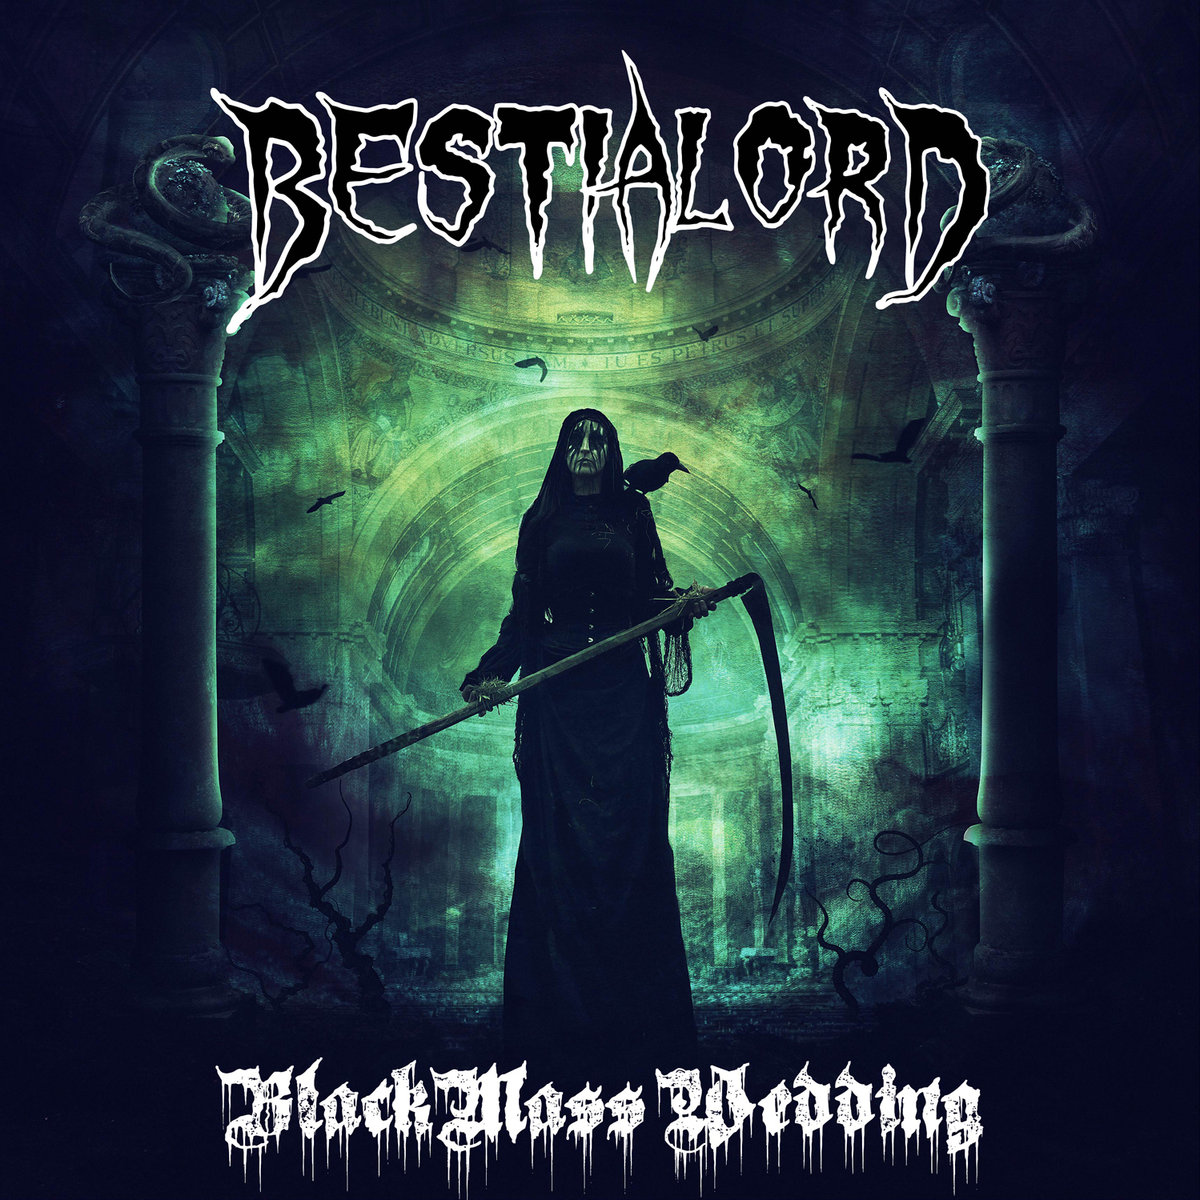 bestialord – black mass wedding